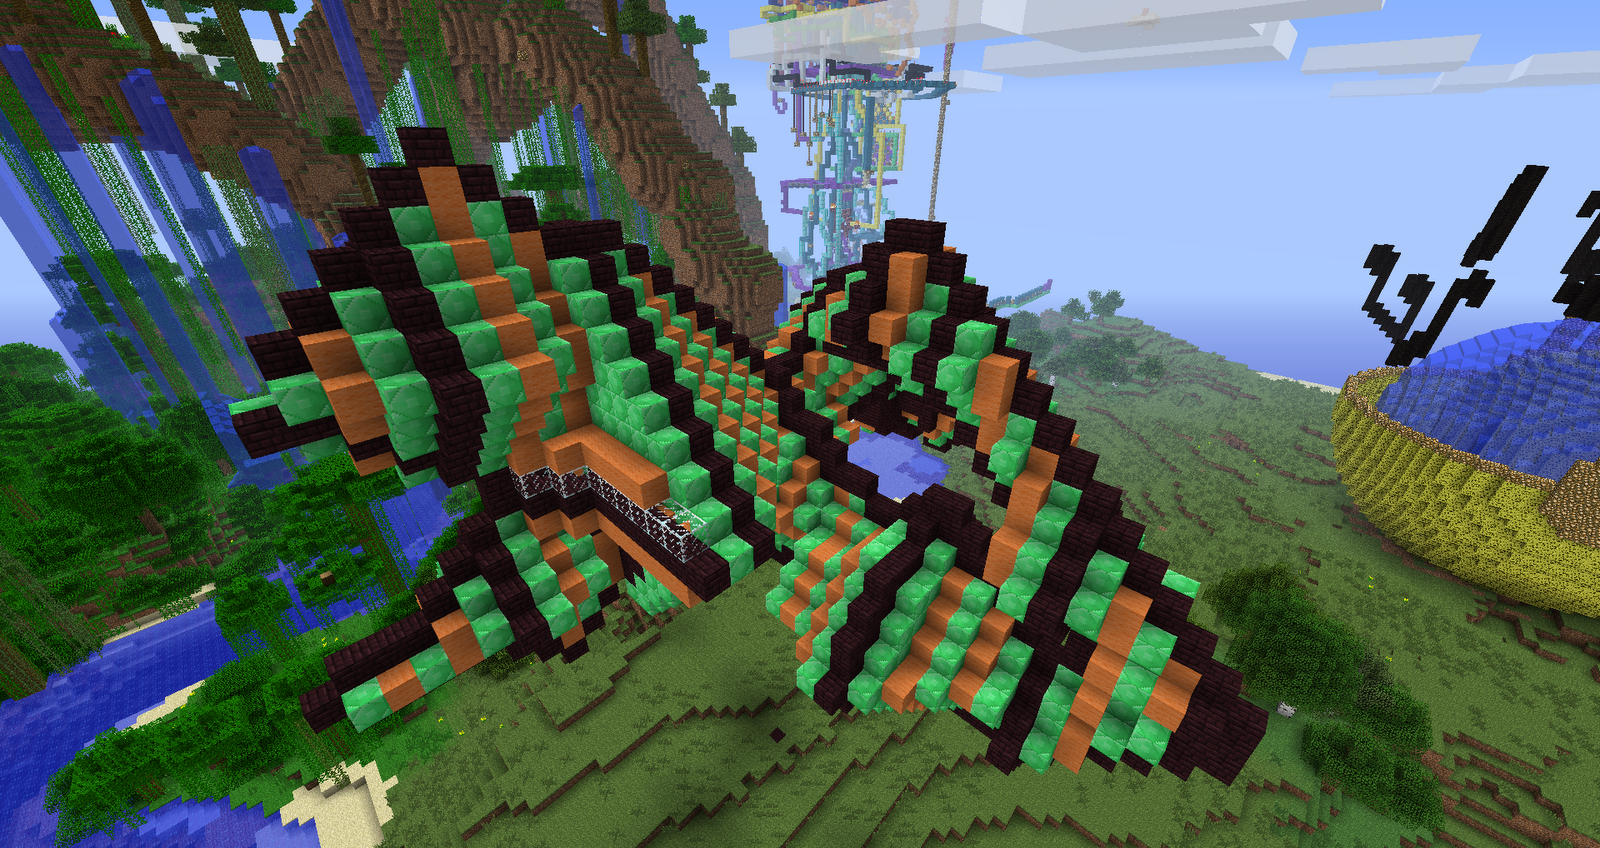 Easy Minecraft Creations http://dmarquezblog09.blogspot.com/2012/10/minecraft-creations.html